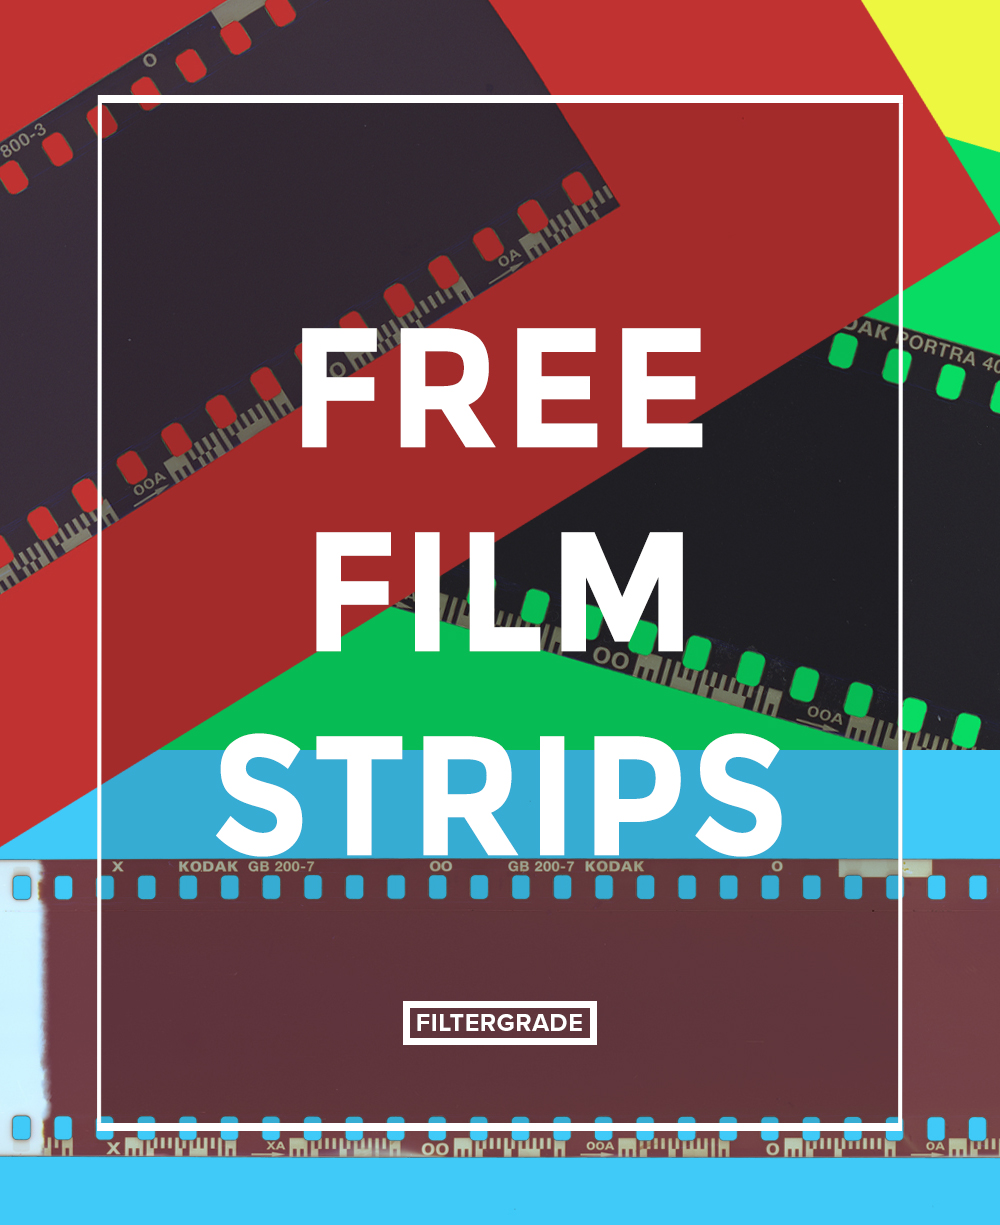 FREE FILM STRIPS* - FILTERGRADE